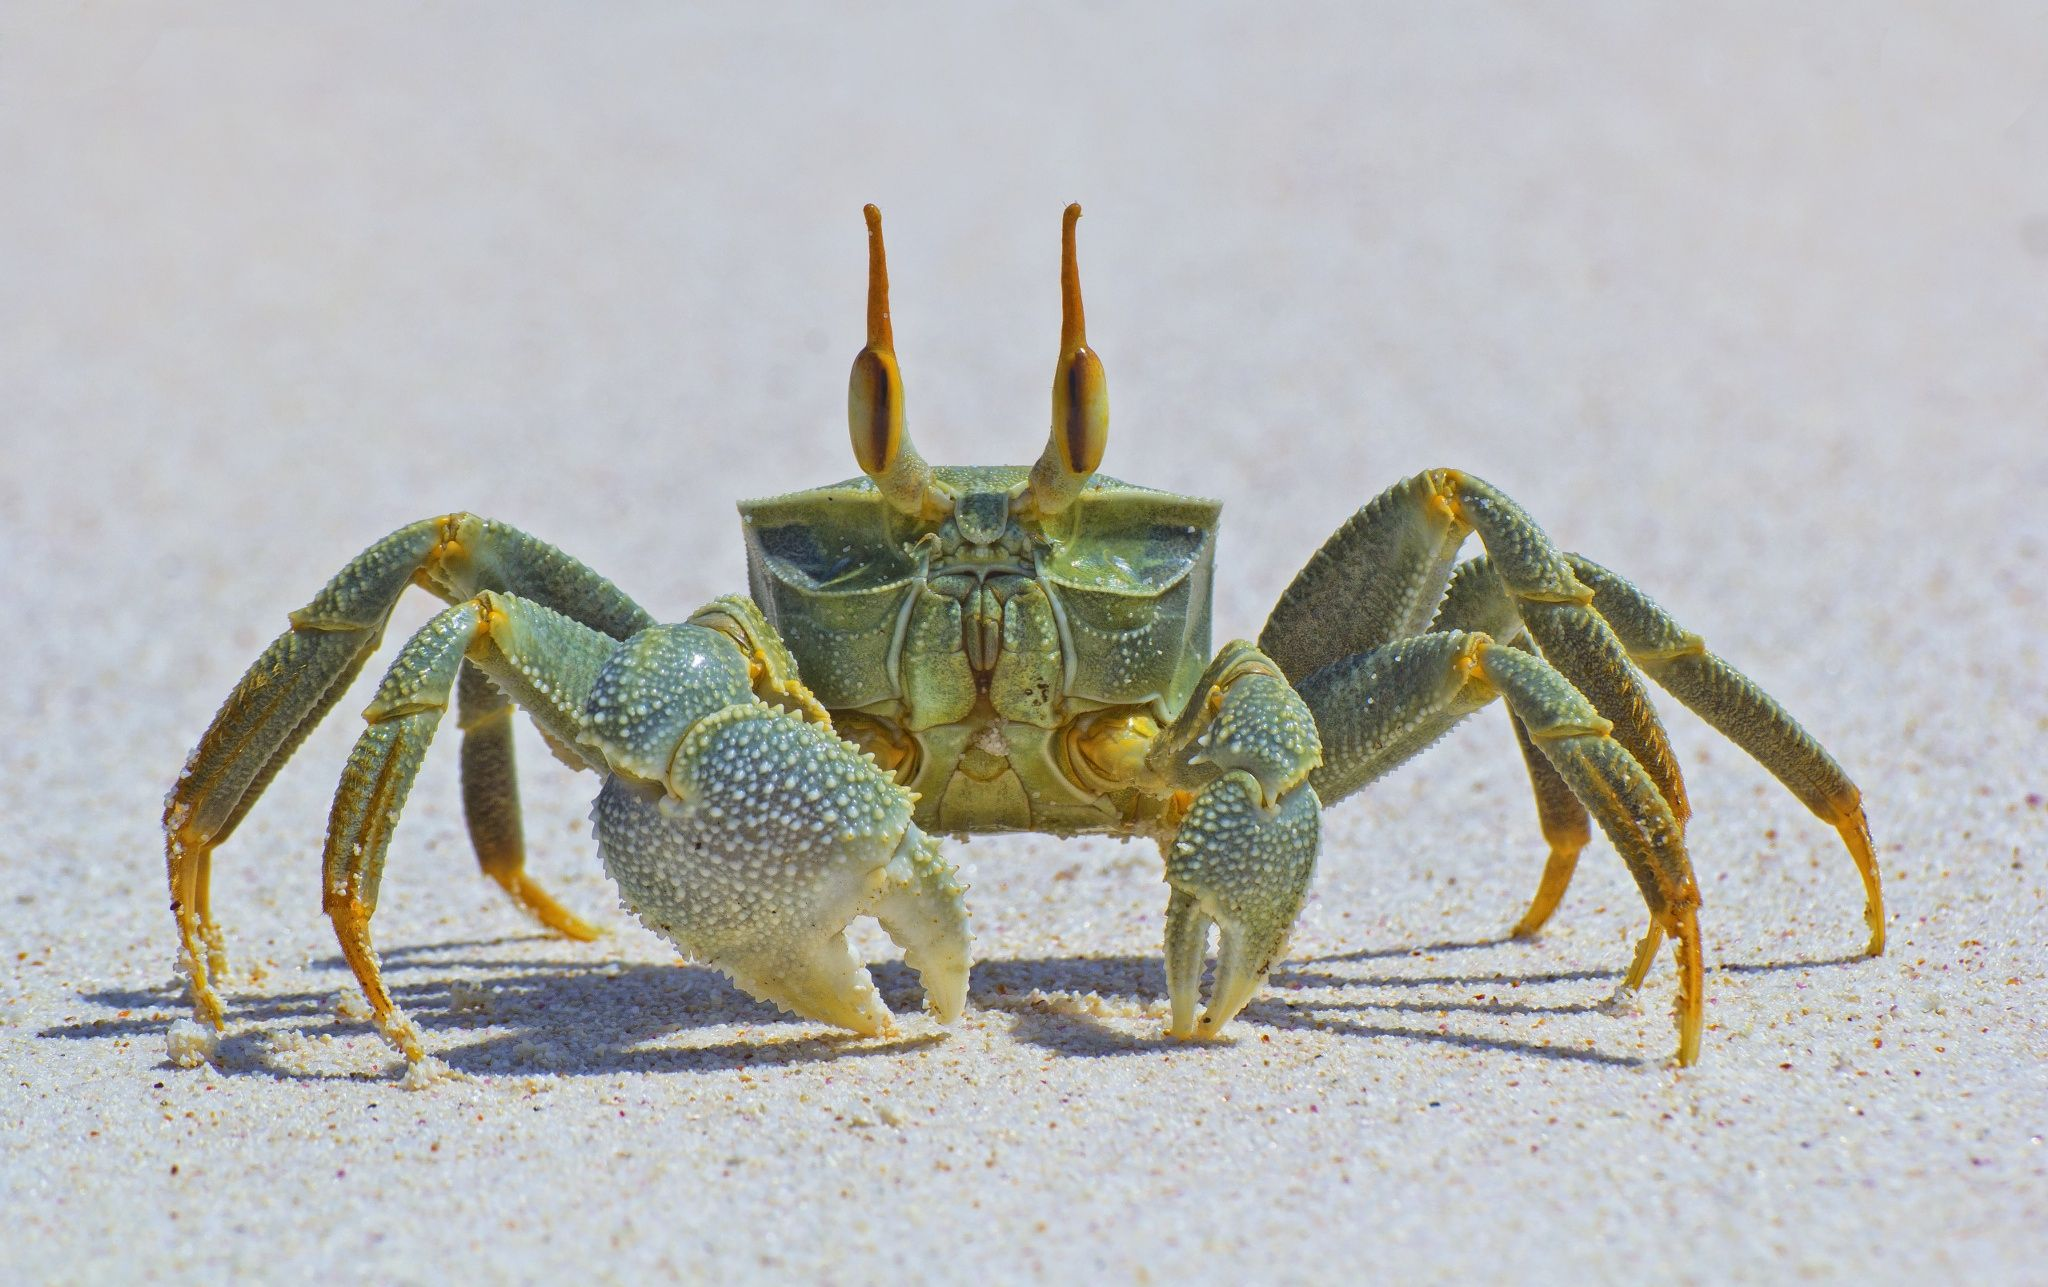 Ghost Crab 4188b0c623abc1a9fc9351b2a971aeea 2048 215 1287